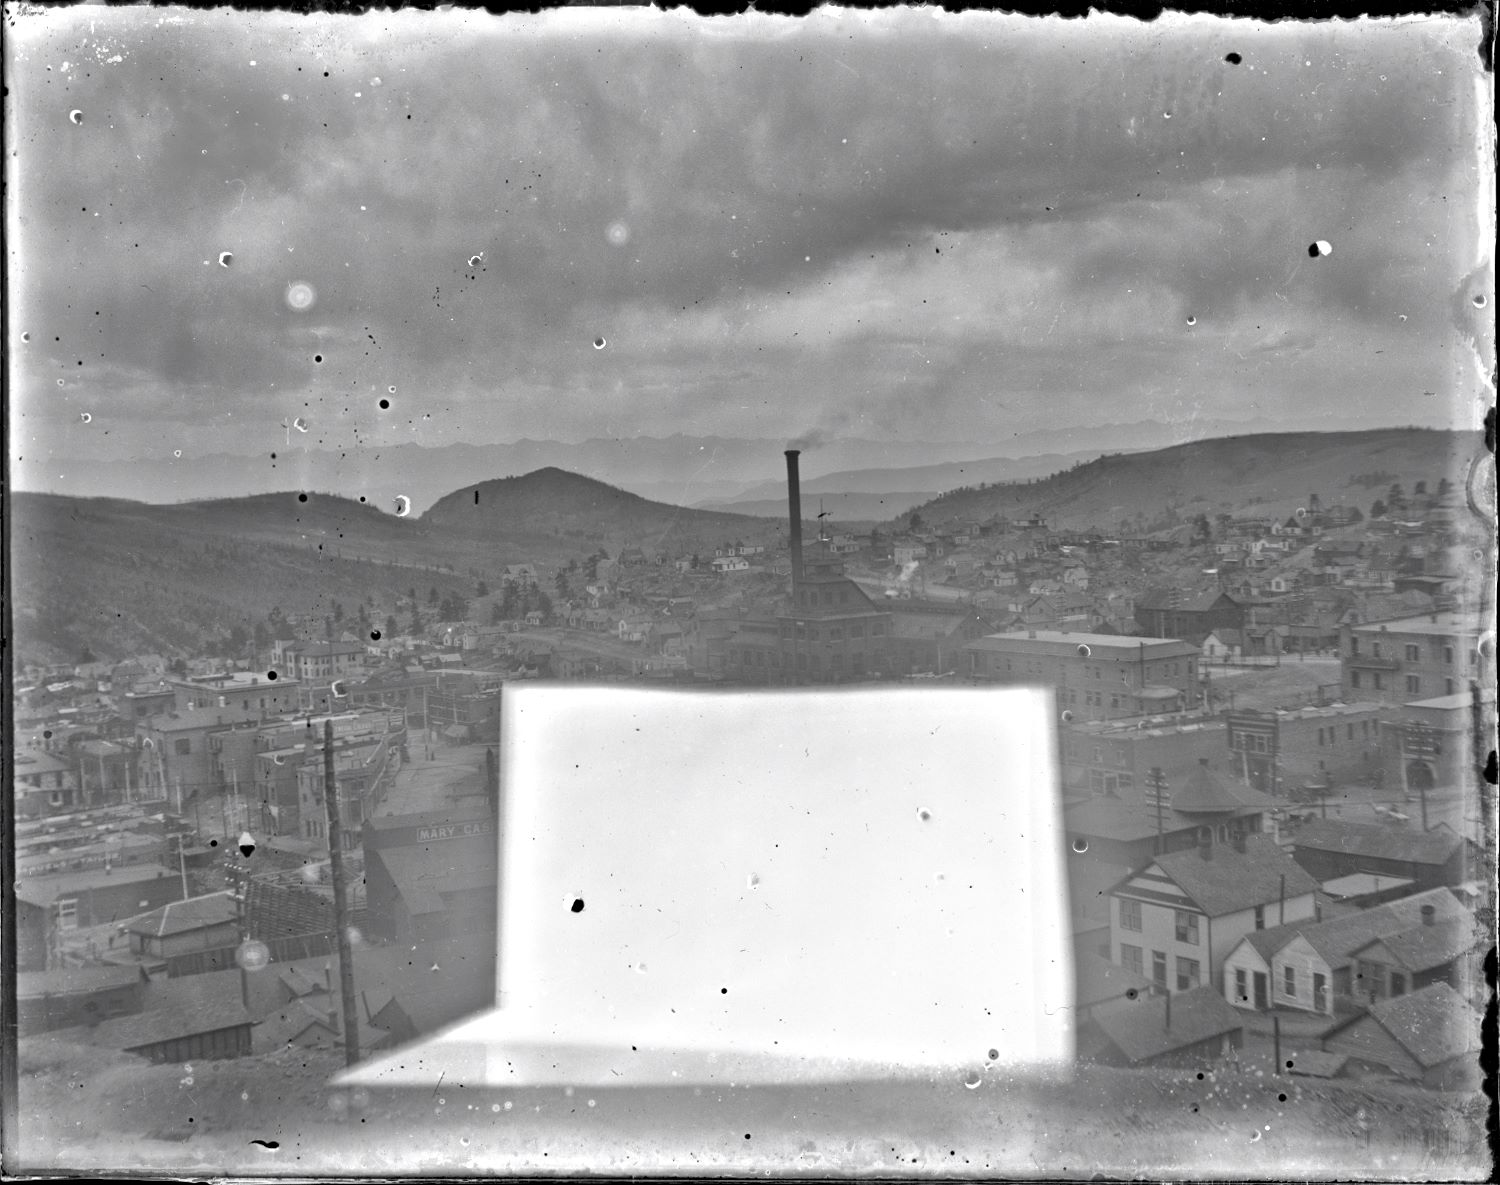 Sadly, this image is pretty messed up by that large whitish block showing up on the glass plate negative. Add the fact it is really not that sharp either, and blurs a little on the edges, and it folds itself nicely into most other images in my collection, close but not the best of views, like most of the images I have! * Around center of the view is the familiar look of the Gold Coin structures, looking at the north and east walls. * Near lower left is the F. & C.C. depot, the western part of it obscured by the crib-wall of the Mary Cashen mine. The Ore-house is partly hidden under the damaged part, same with the head frame, and any other possible good things. * The M.T. depot is seen near the lower right corner. * Near the right-hand side, about 2/5 down from the top, is the head frame and hoist house of the Golconda mine, sadly I was not able to get a sharp scan so there is no reason to try get a closer look as it really is not much to look at, not sharp at all in a higher resolution scan.